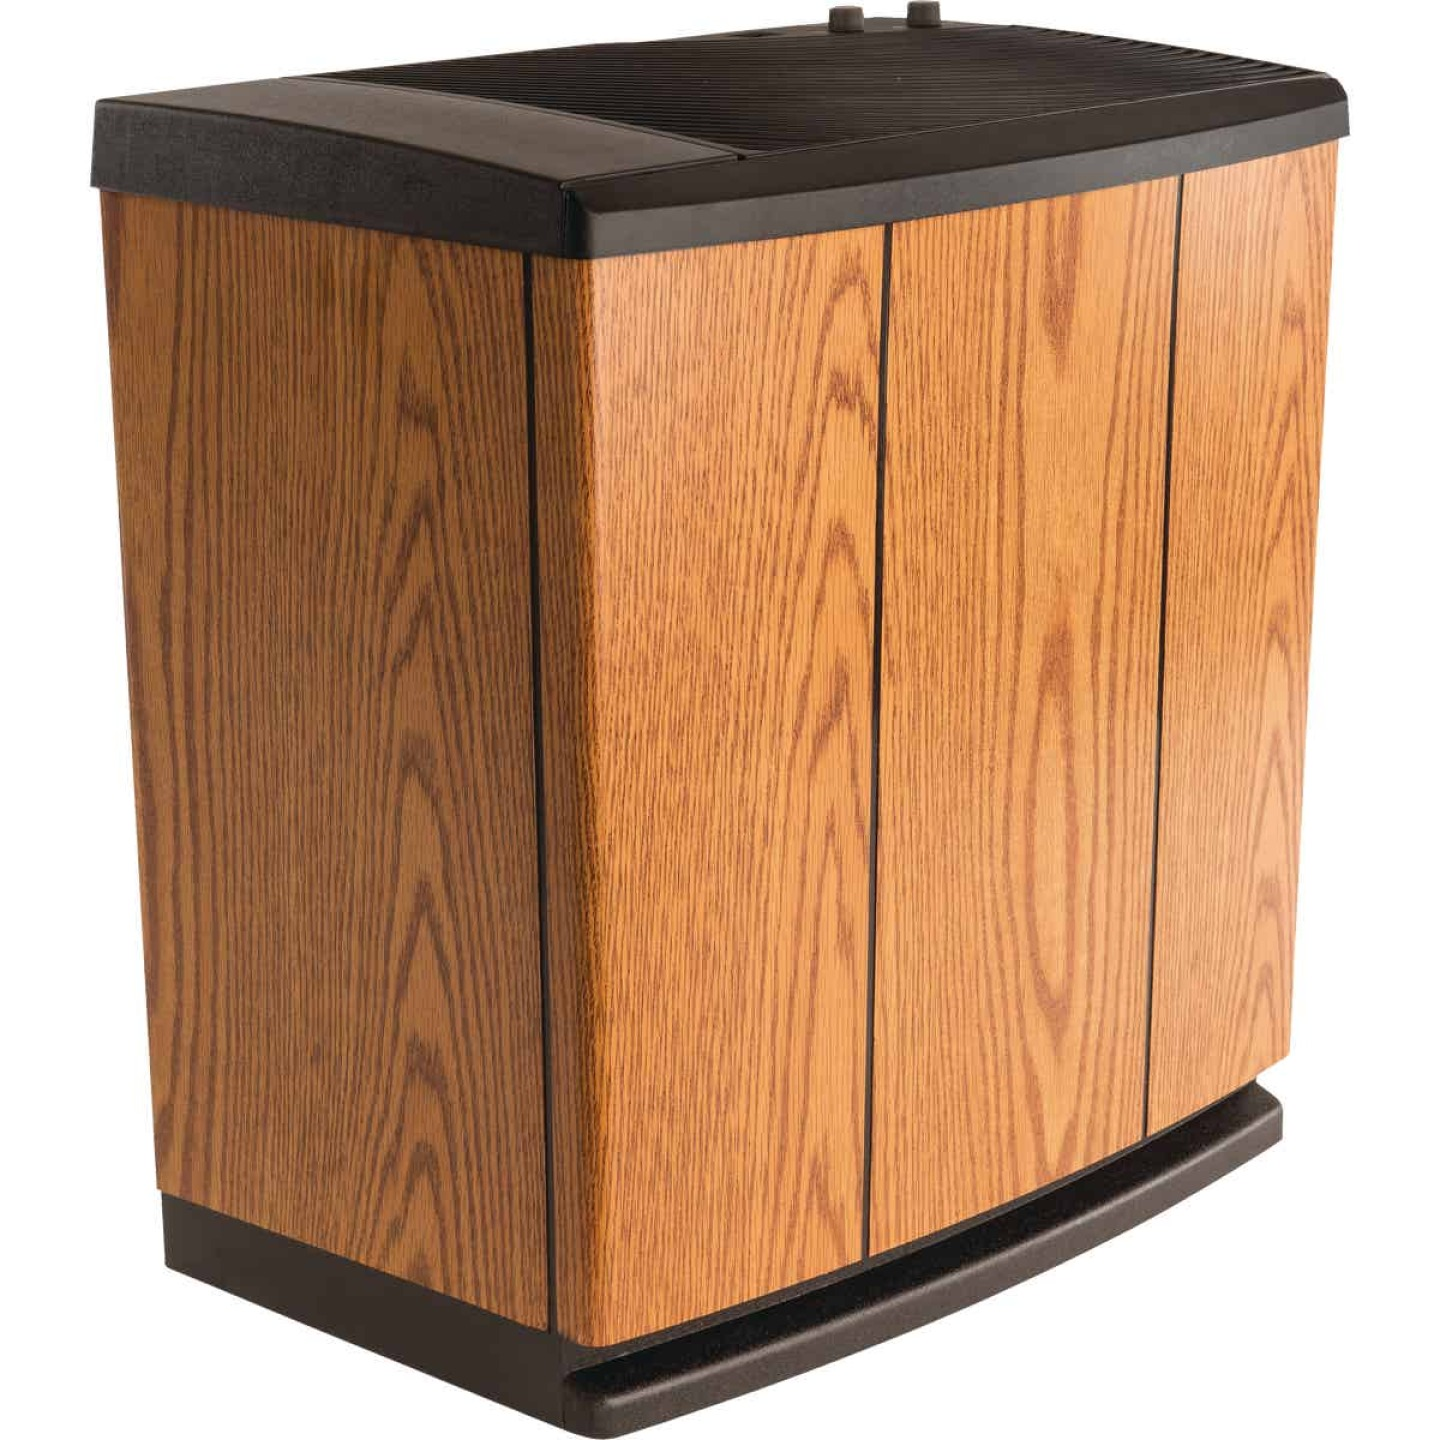 Essick Air 5 Gal. Capacity 3700 Sq. Ft. Console Whole House Humidifier Image 2